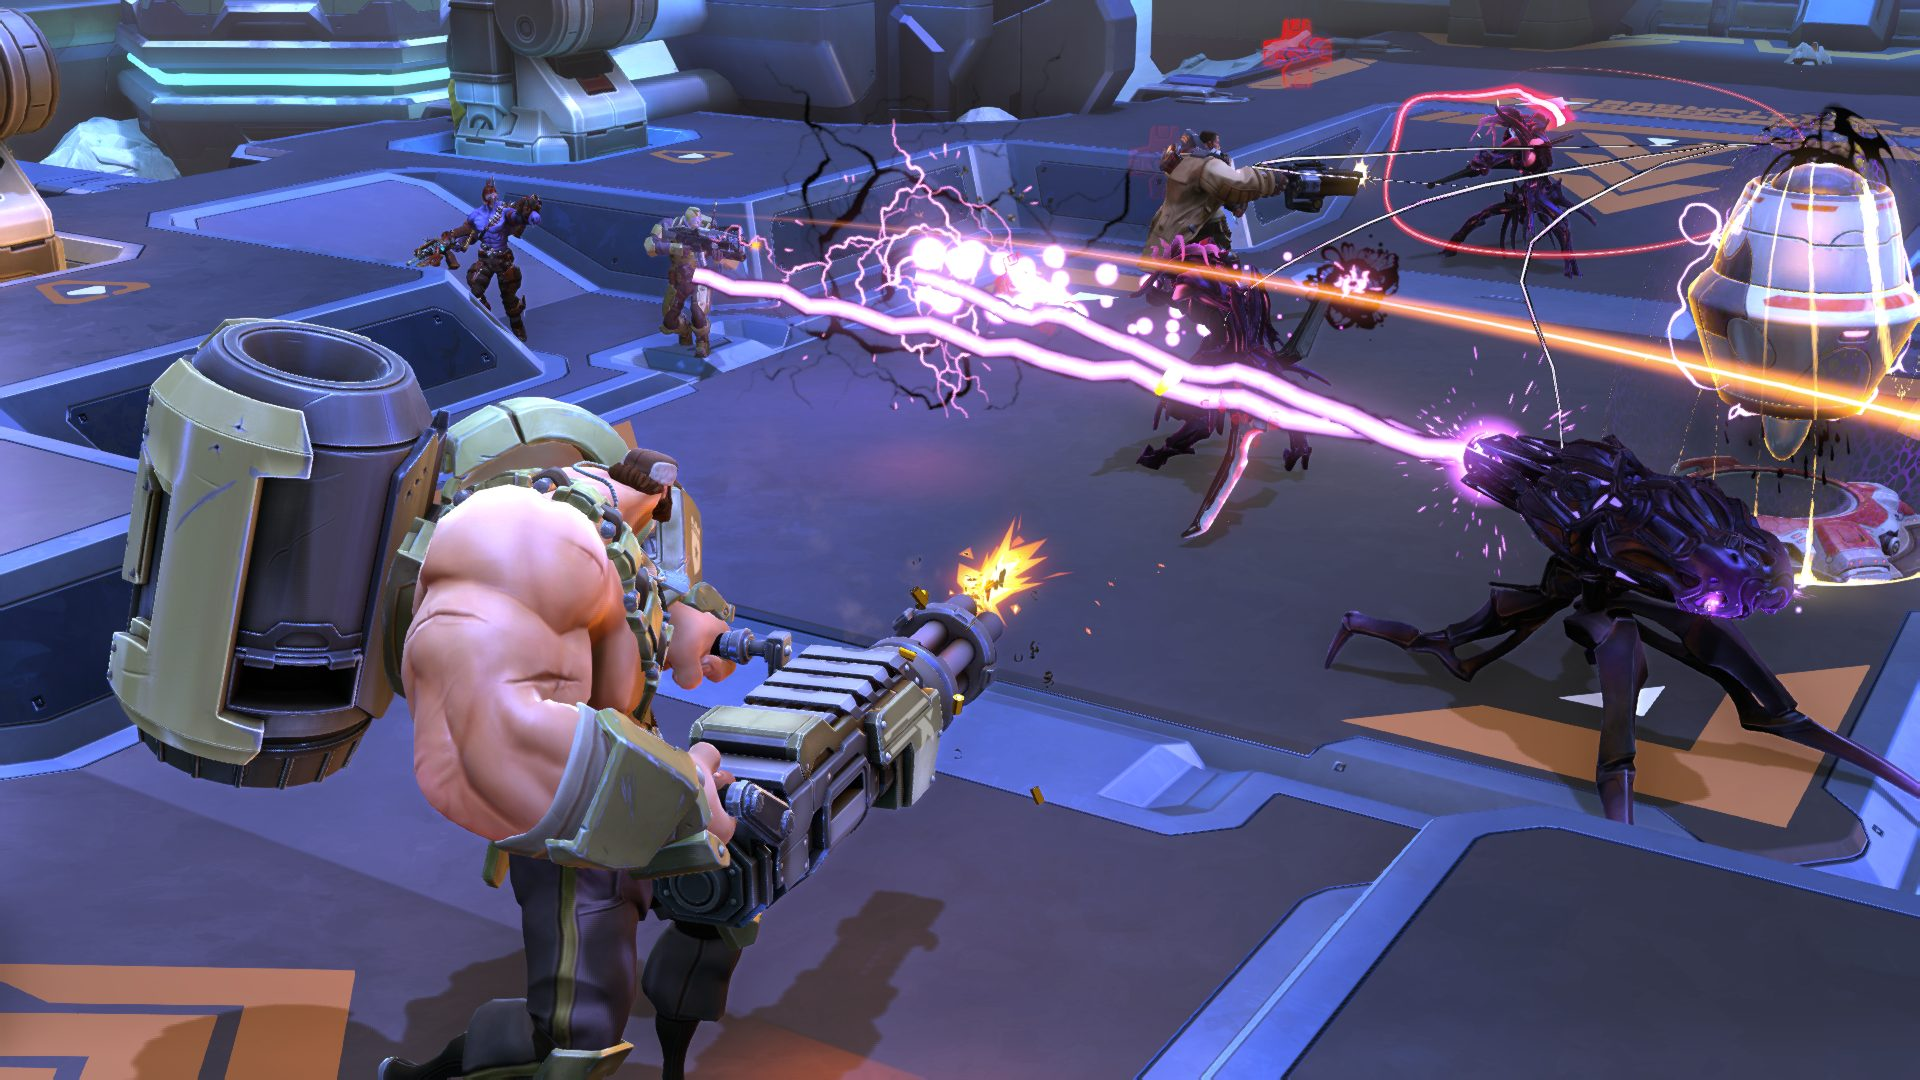 Скриншот  7 - Battleborn (ROW) steam key